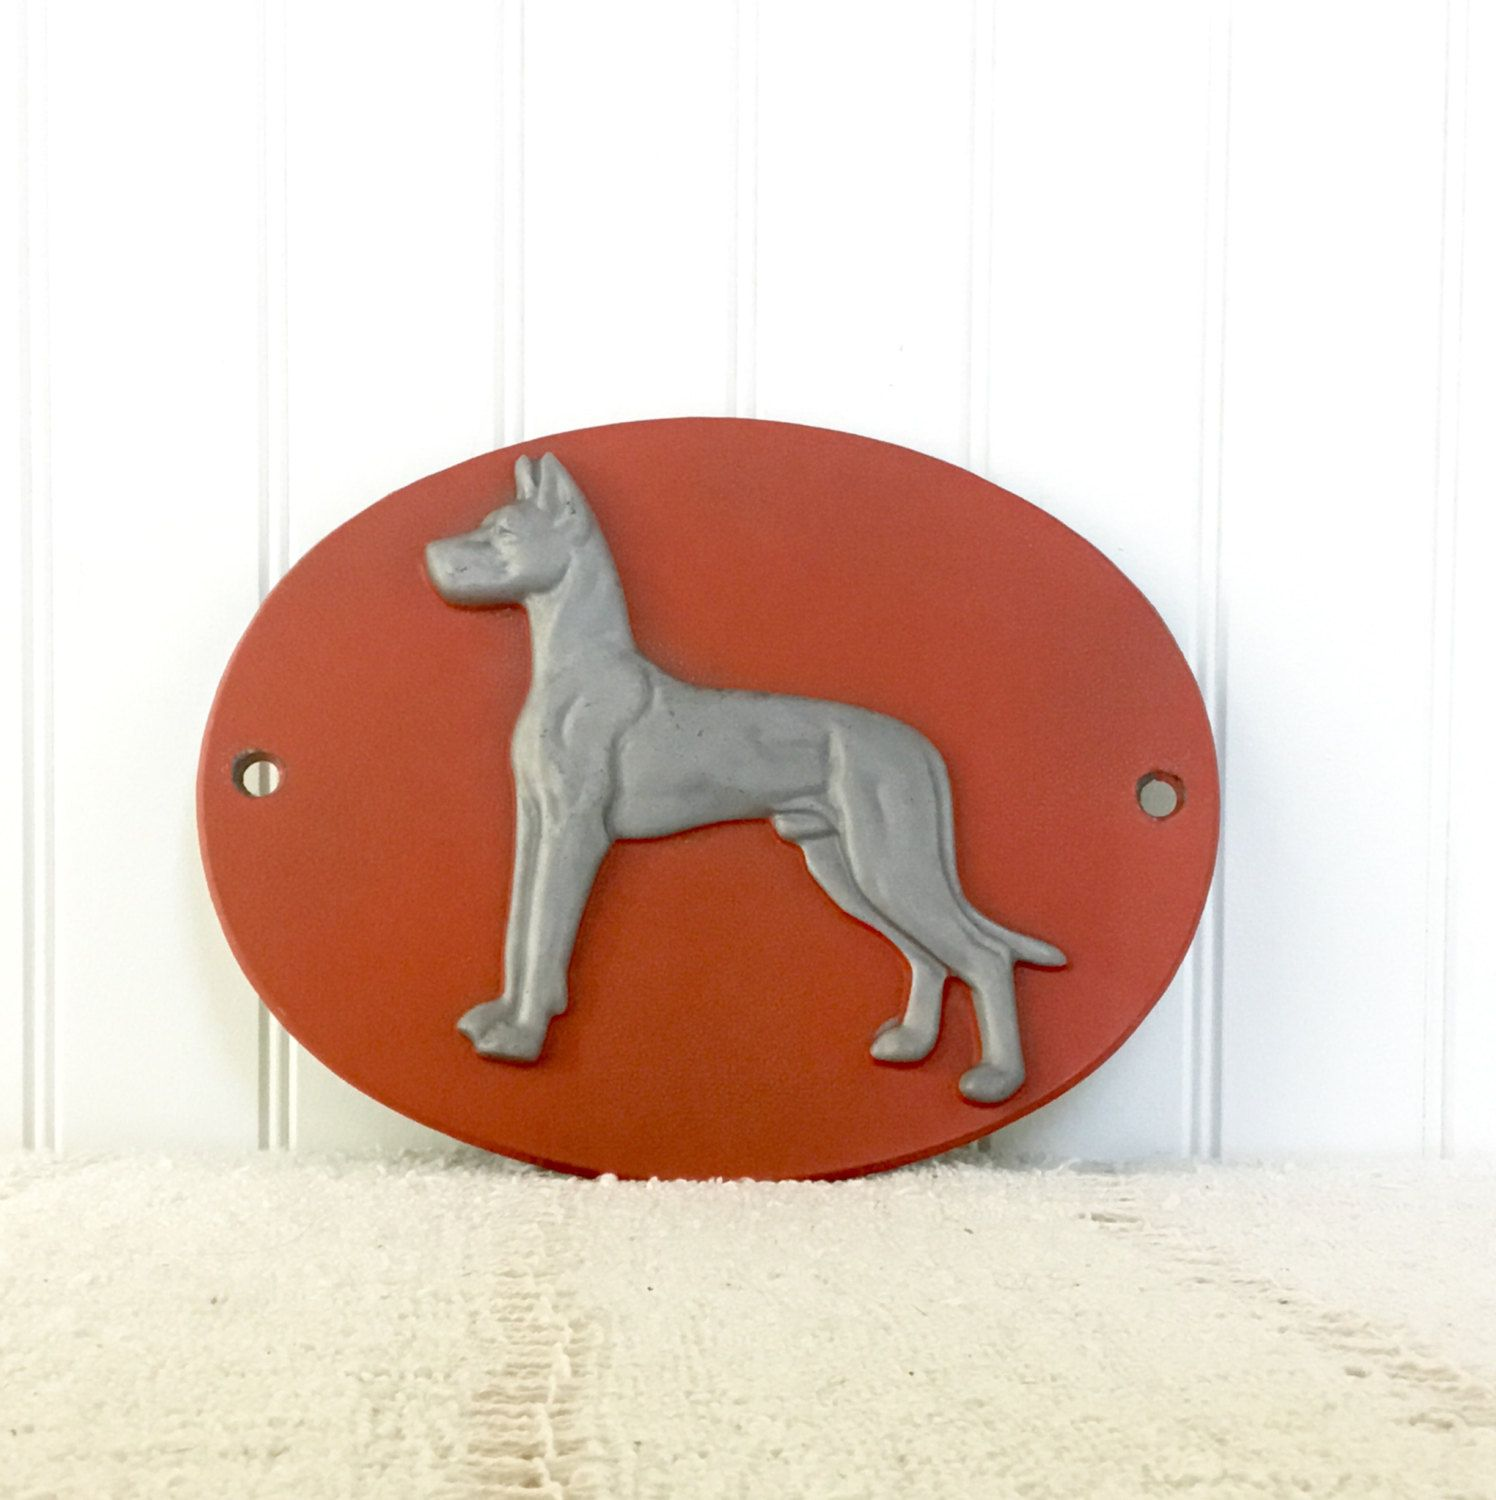 Great Dane Tractor Trailer Emblem Trucking Man Cave Decor Bright